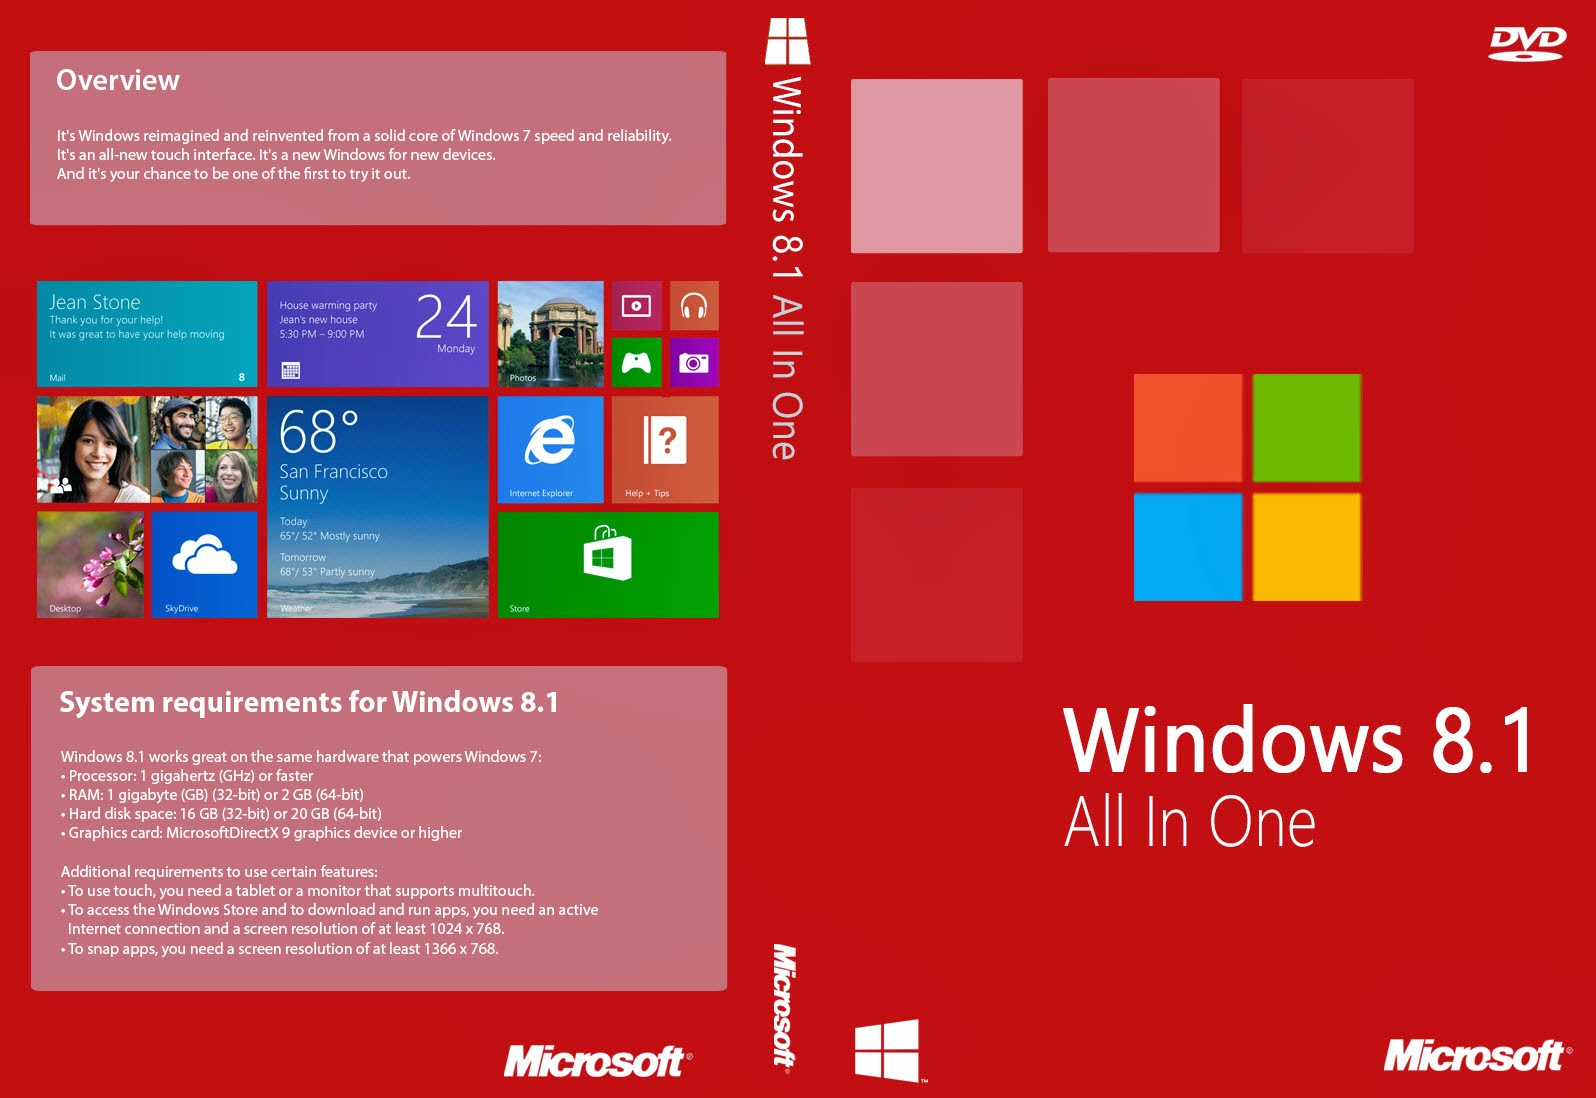 Download Windows 8.1 AIO x64 MULTI 324337